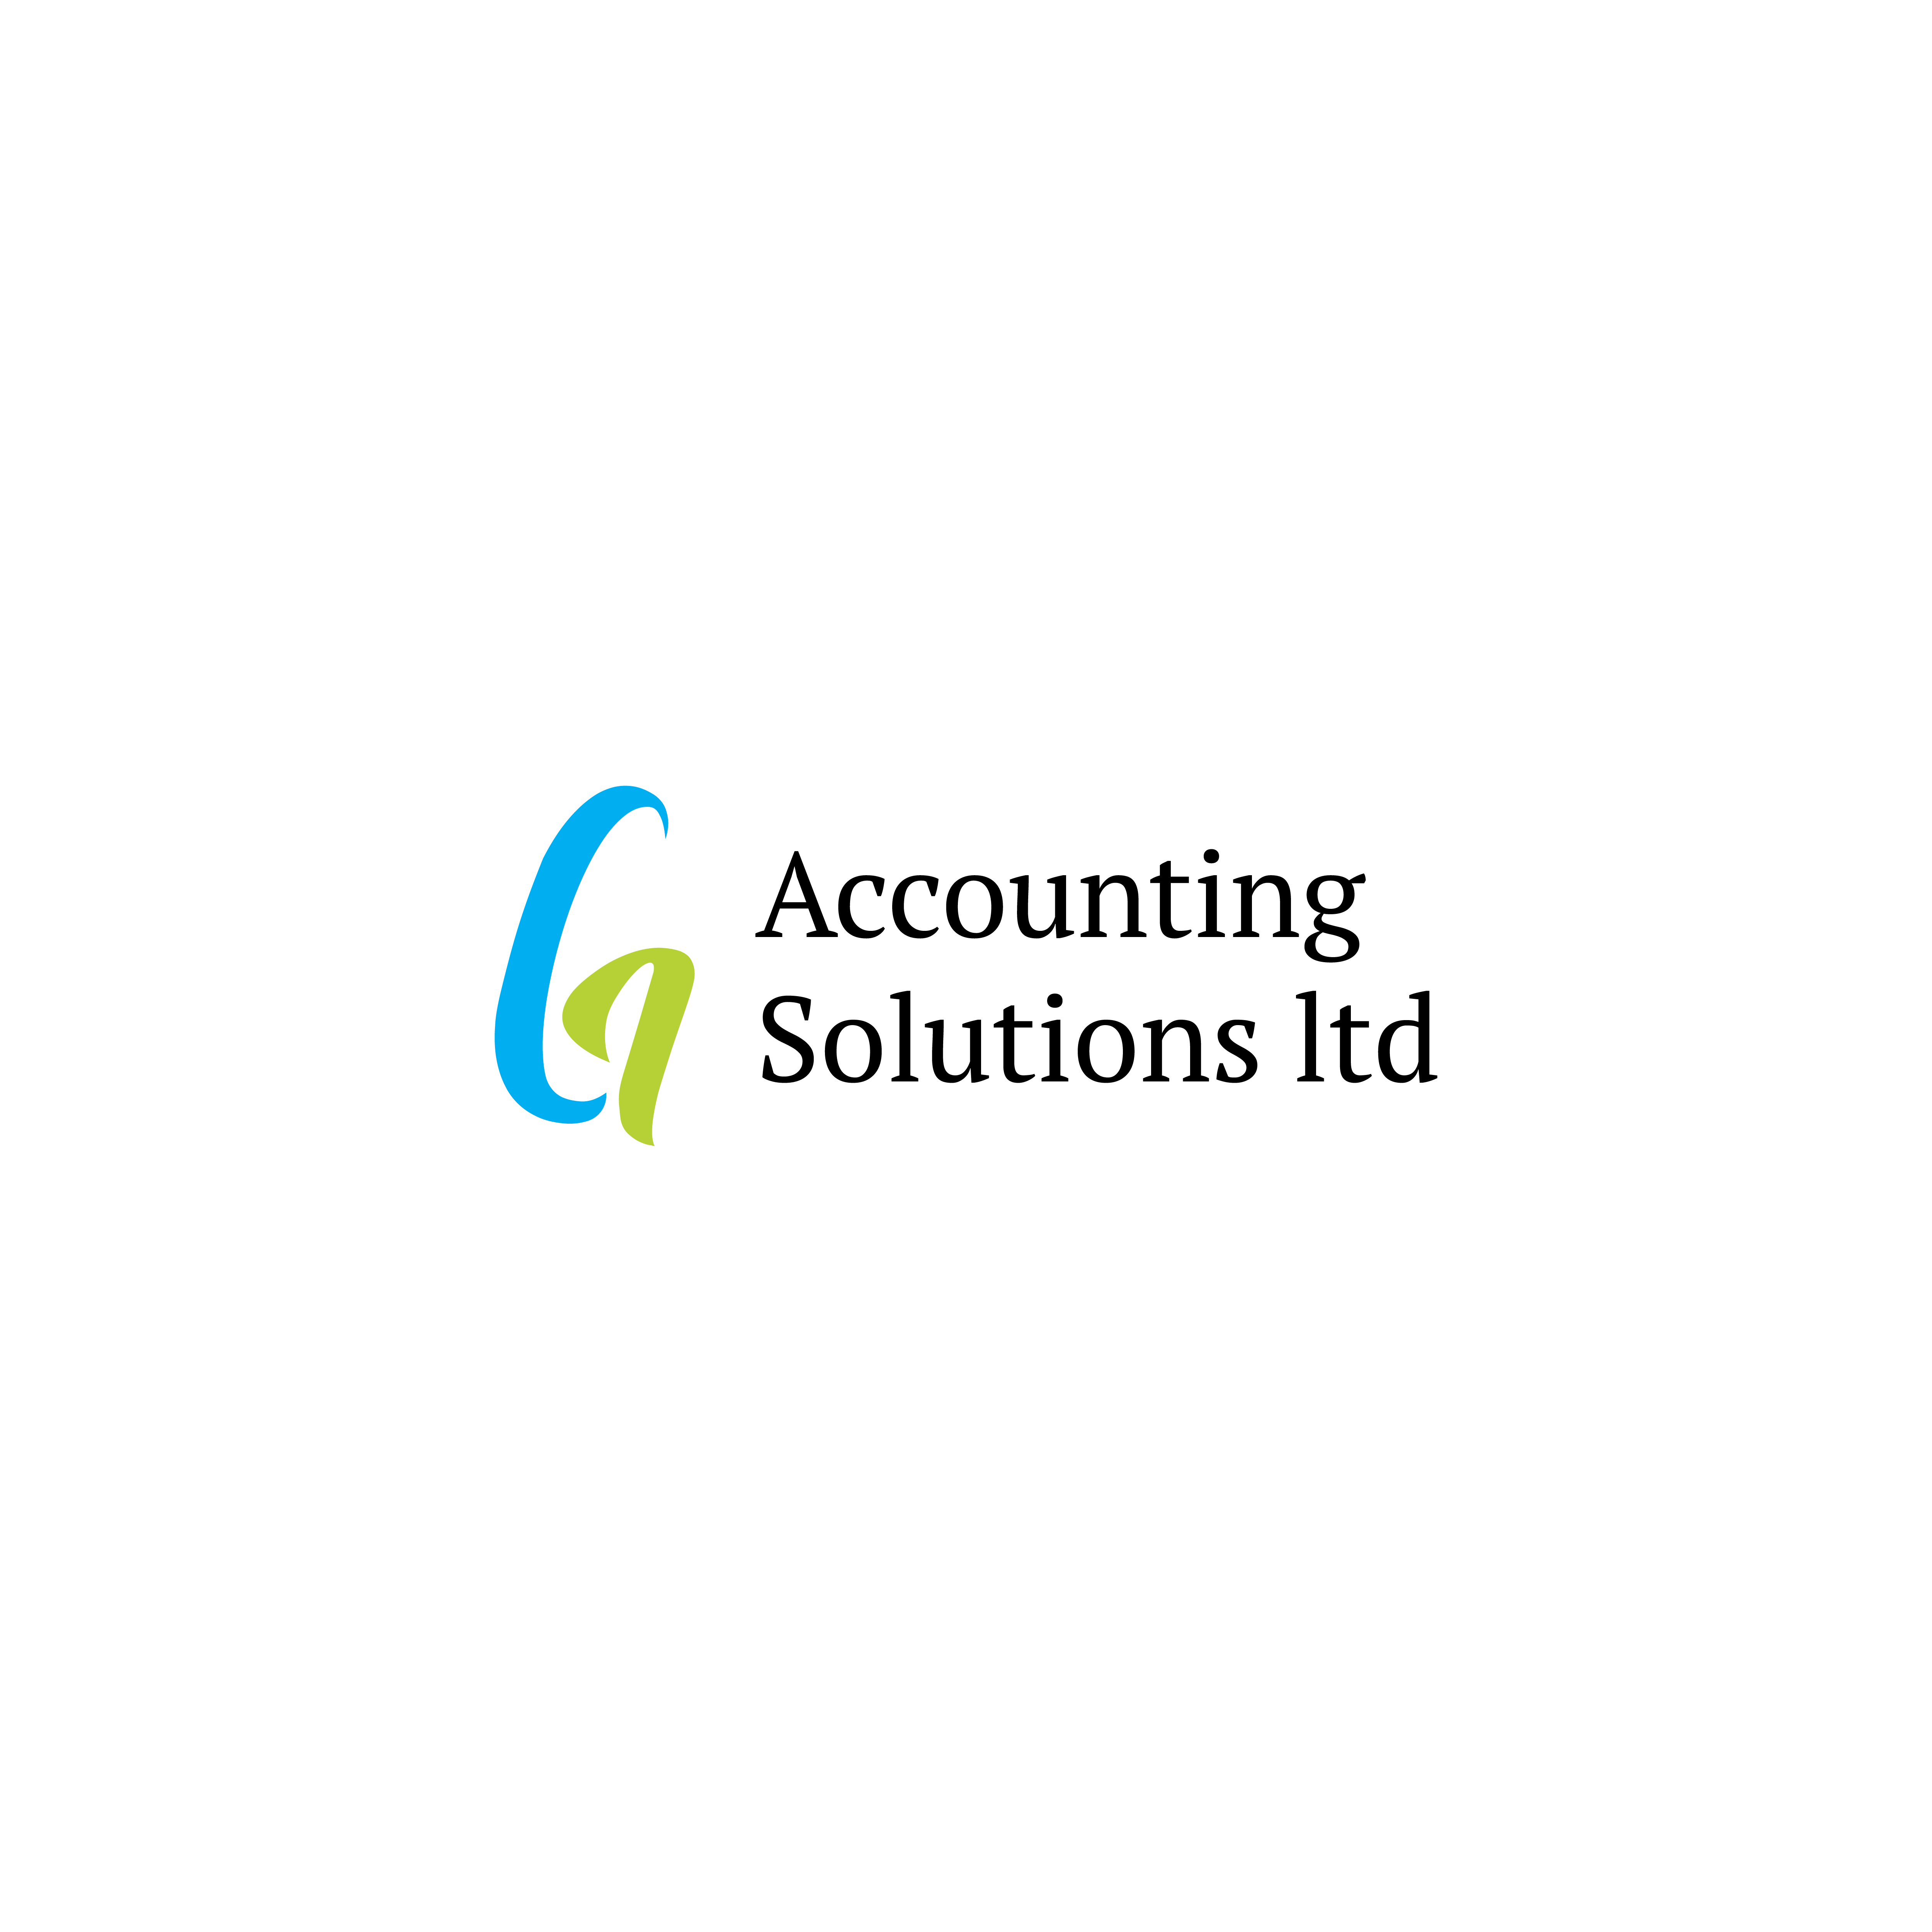 Elegant, Playful, Accountant Logo Design for LG Accounting.